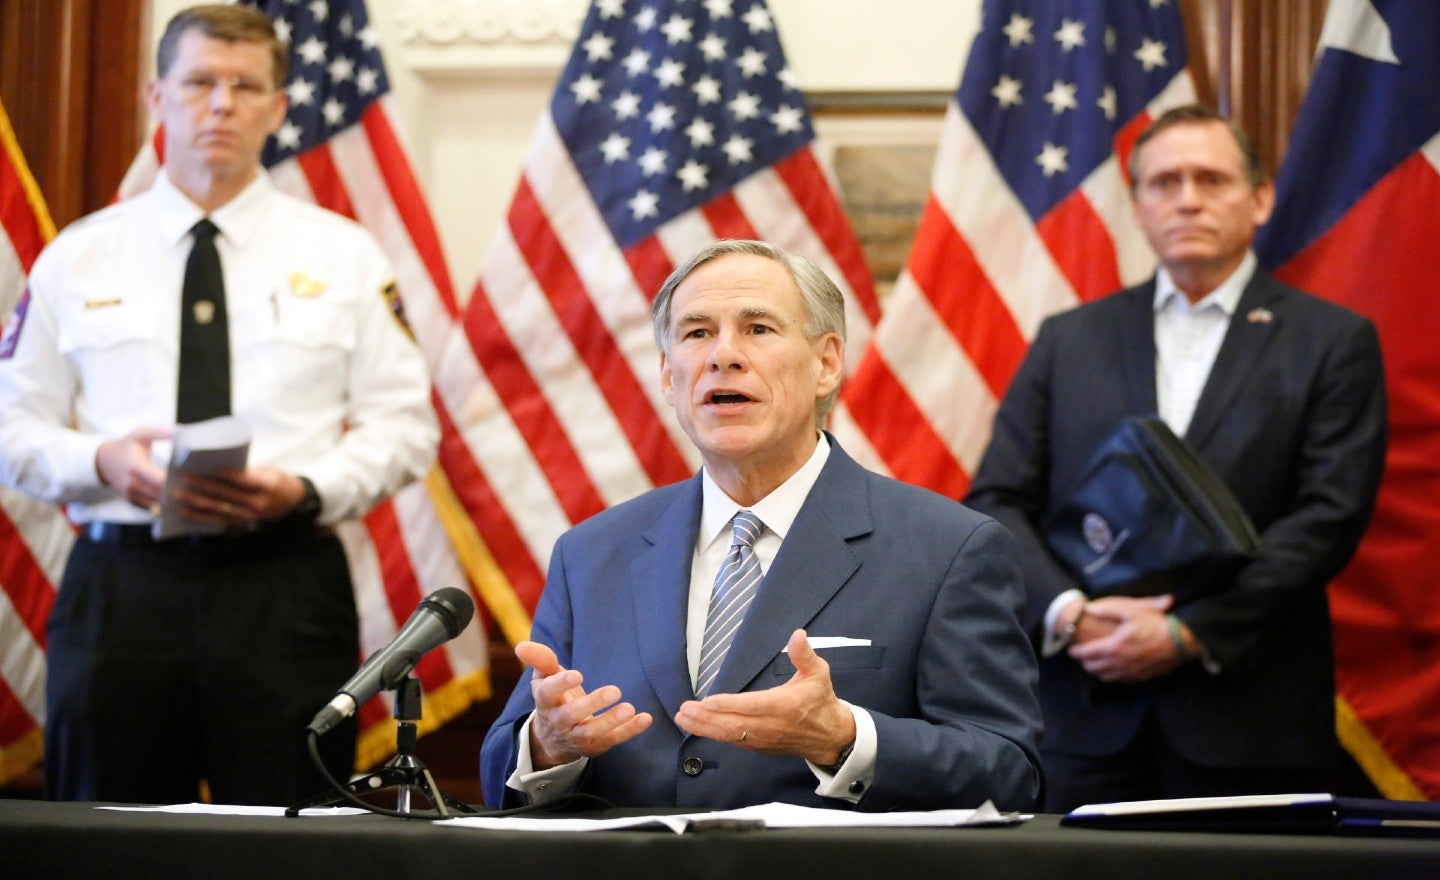 ca_gregabbott_041720getty_1.jpg